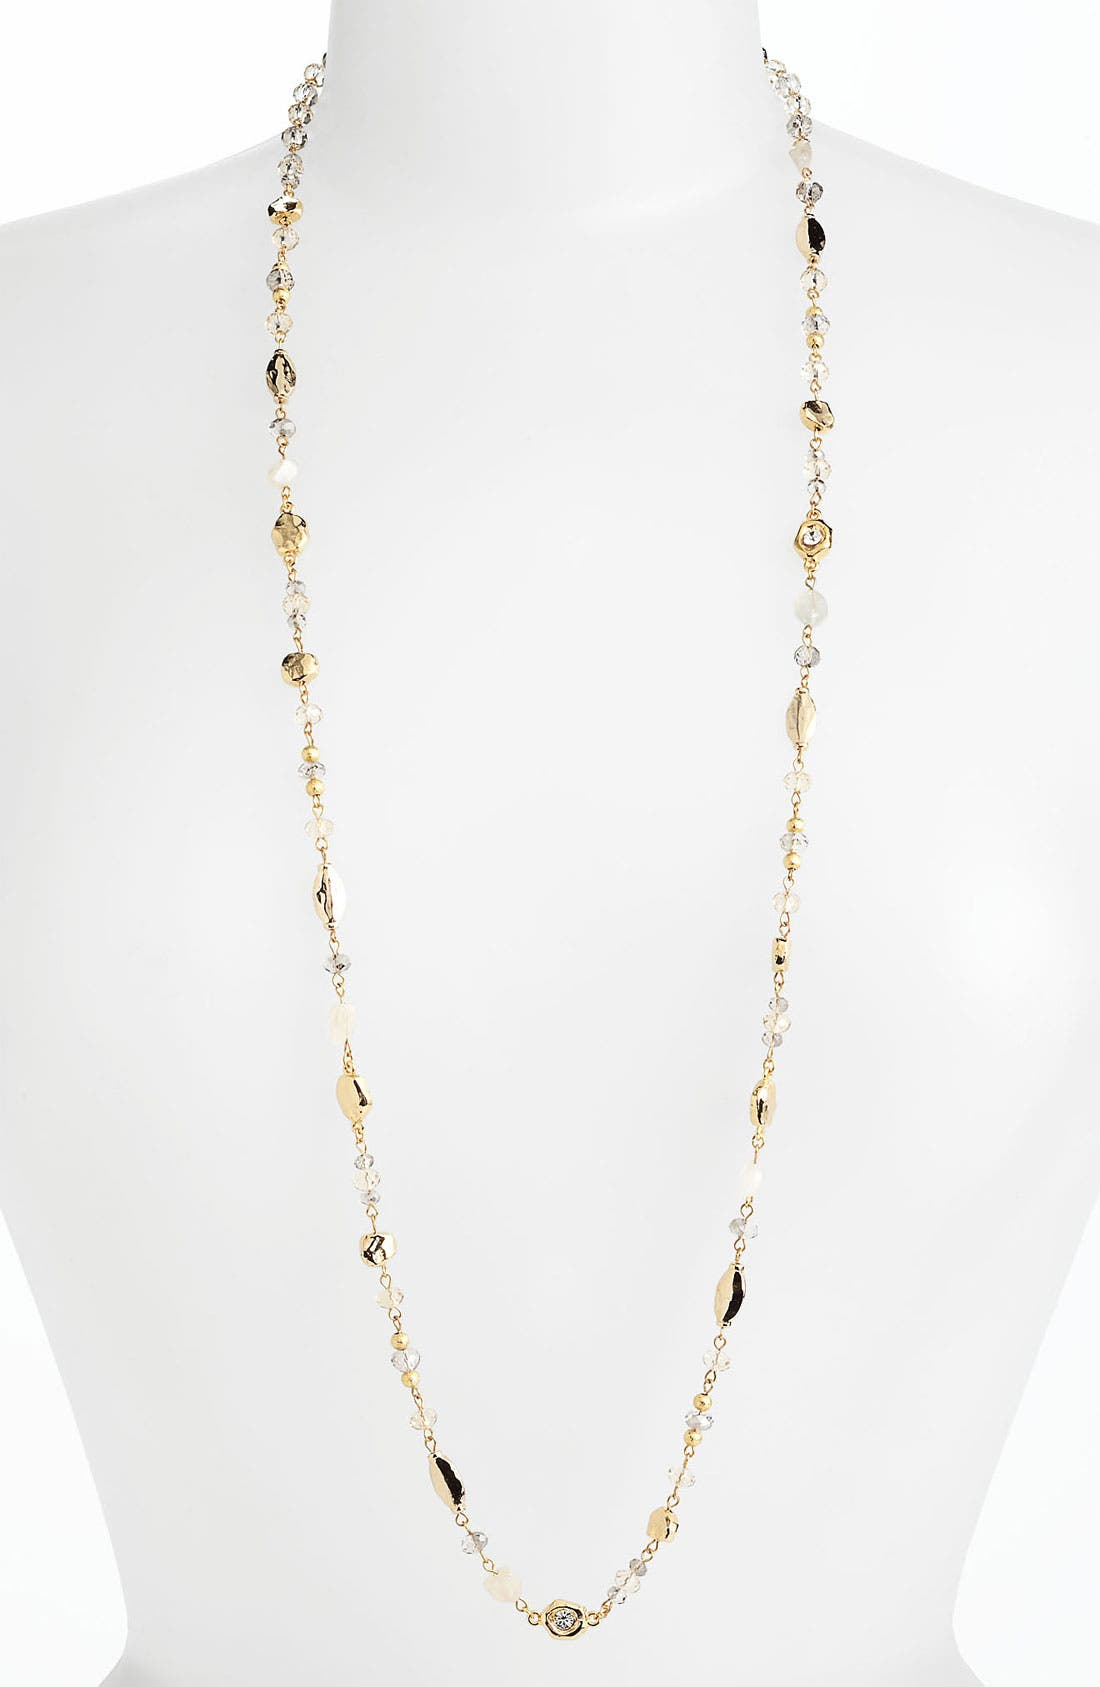 Main Image - Nordstrom 'Sand Dollar' Long Station Necklace